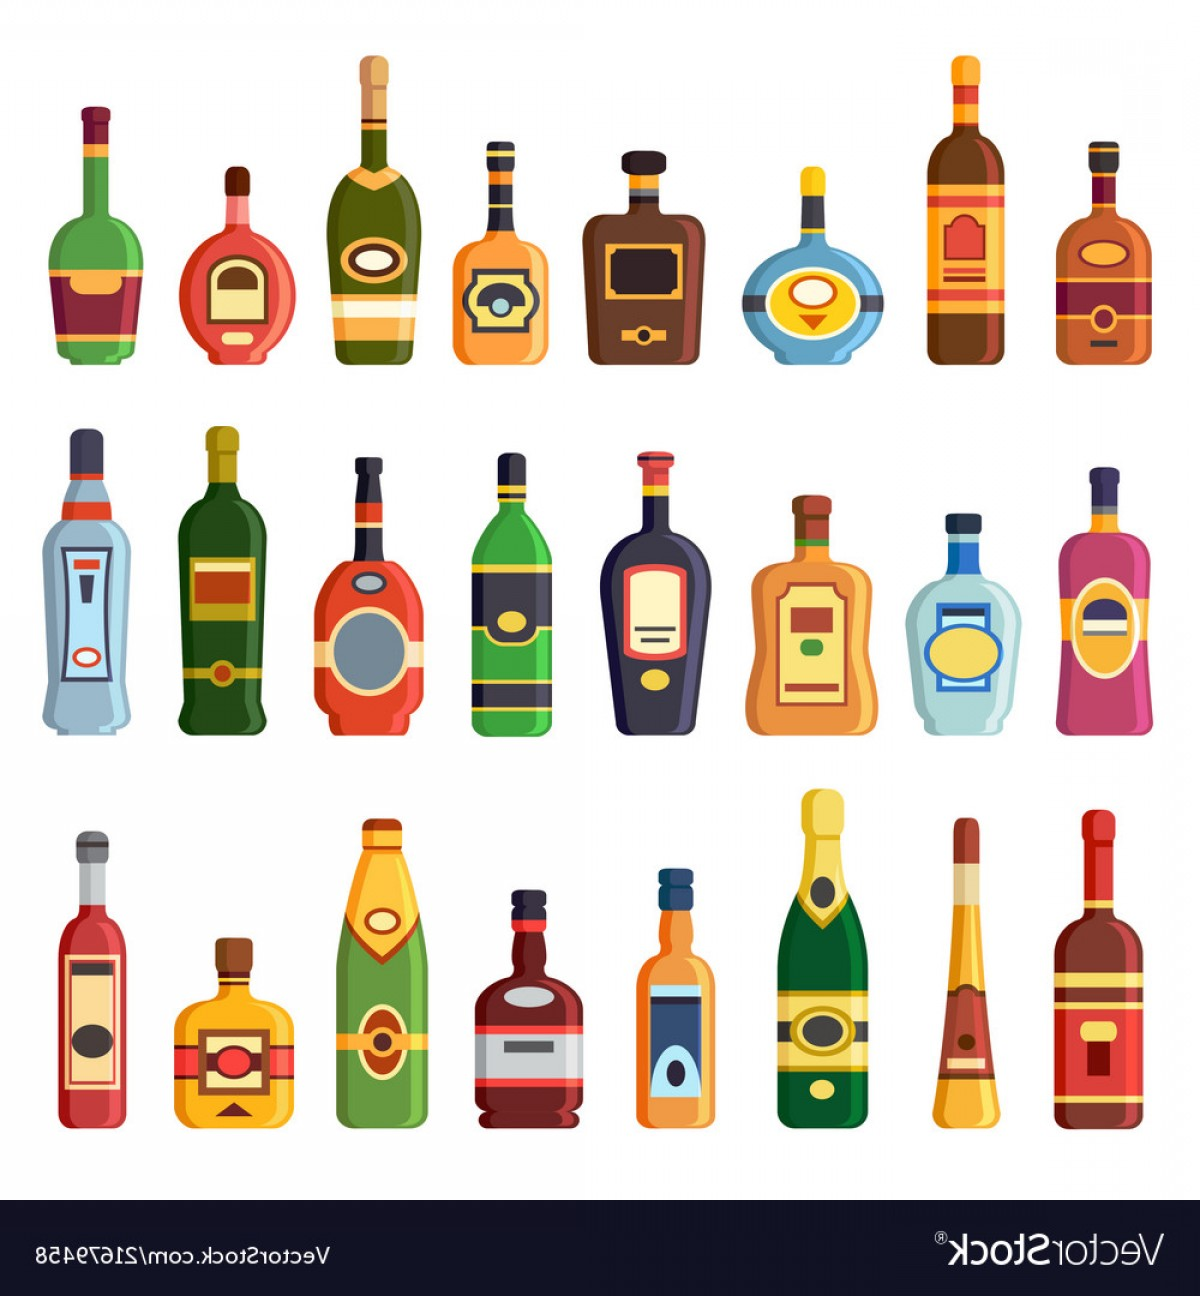 Booze Bottle Vector: Alcohol Bottles Alcoholic Liquor Drink Bottle Vector